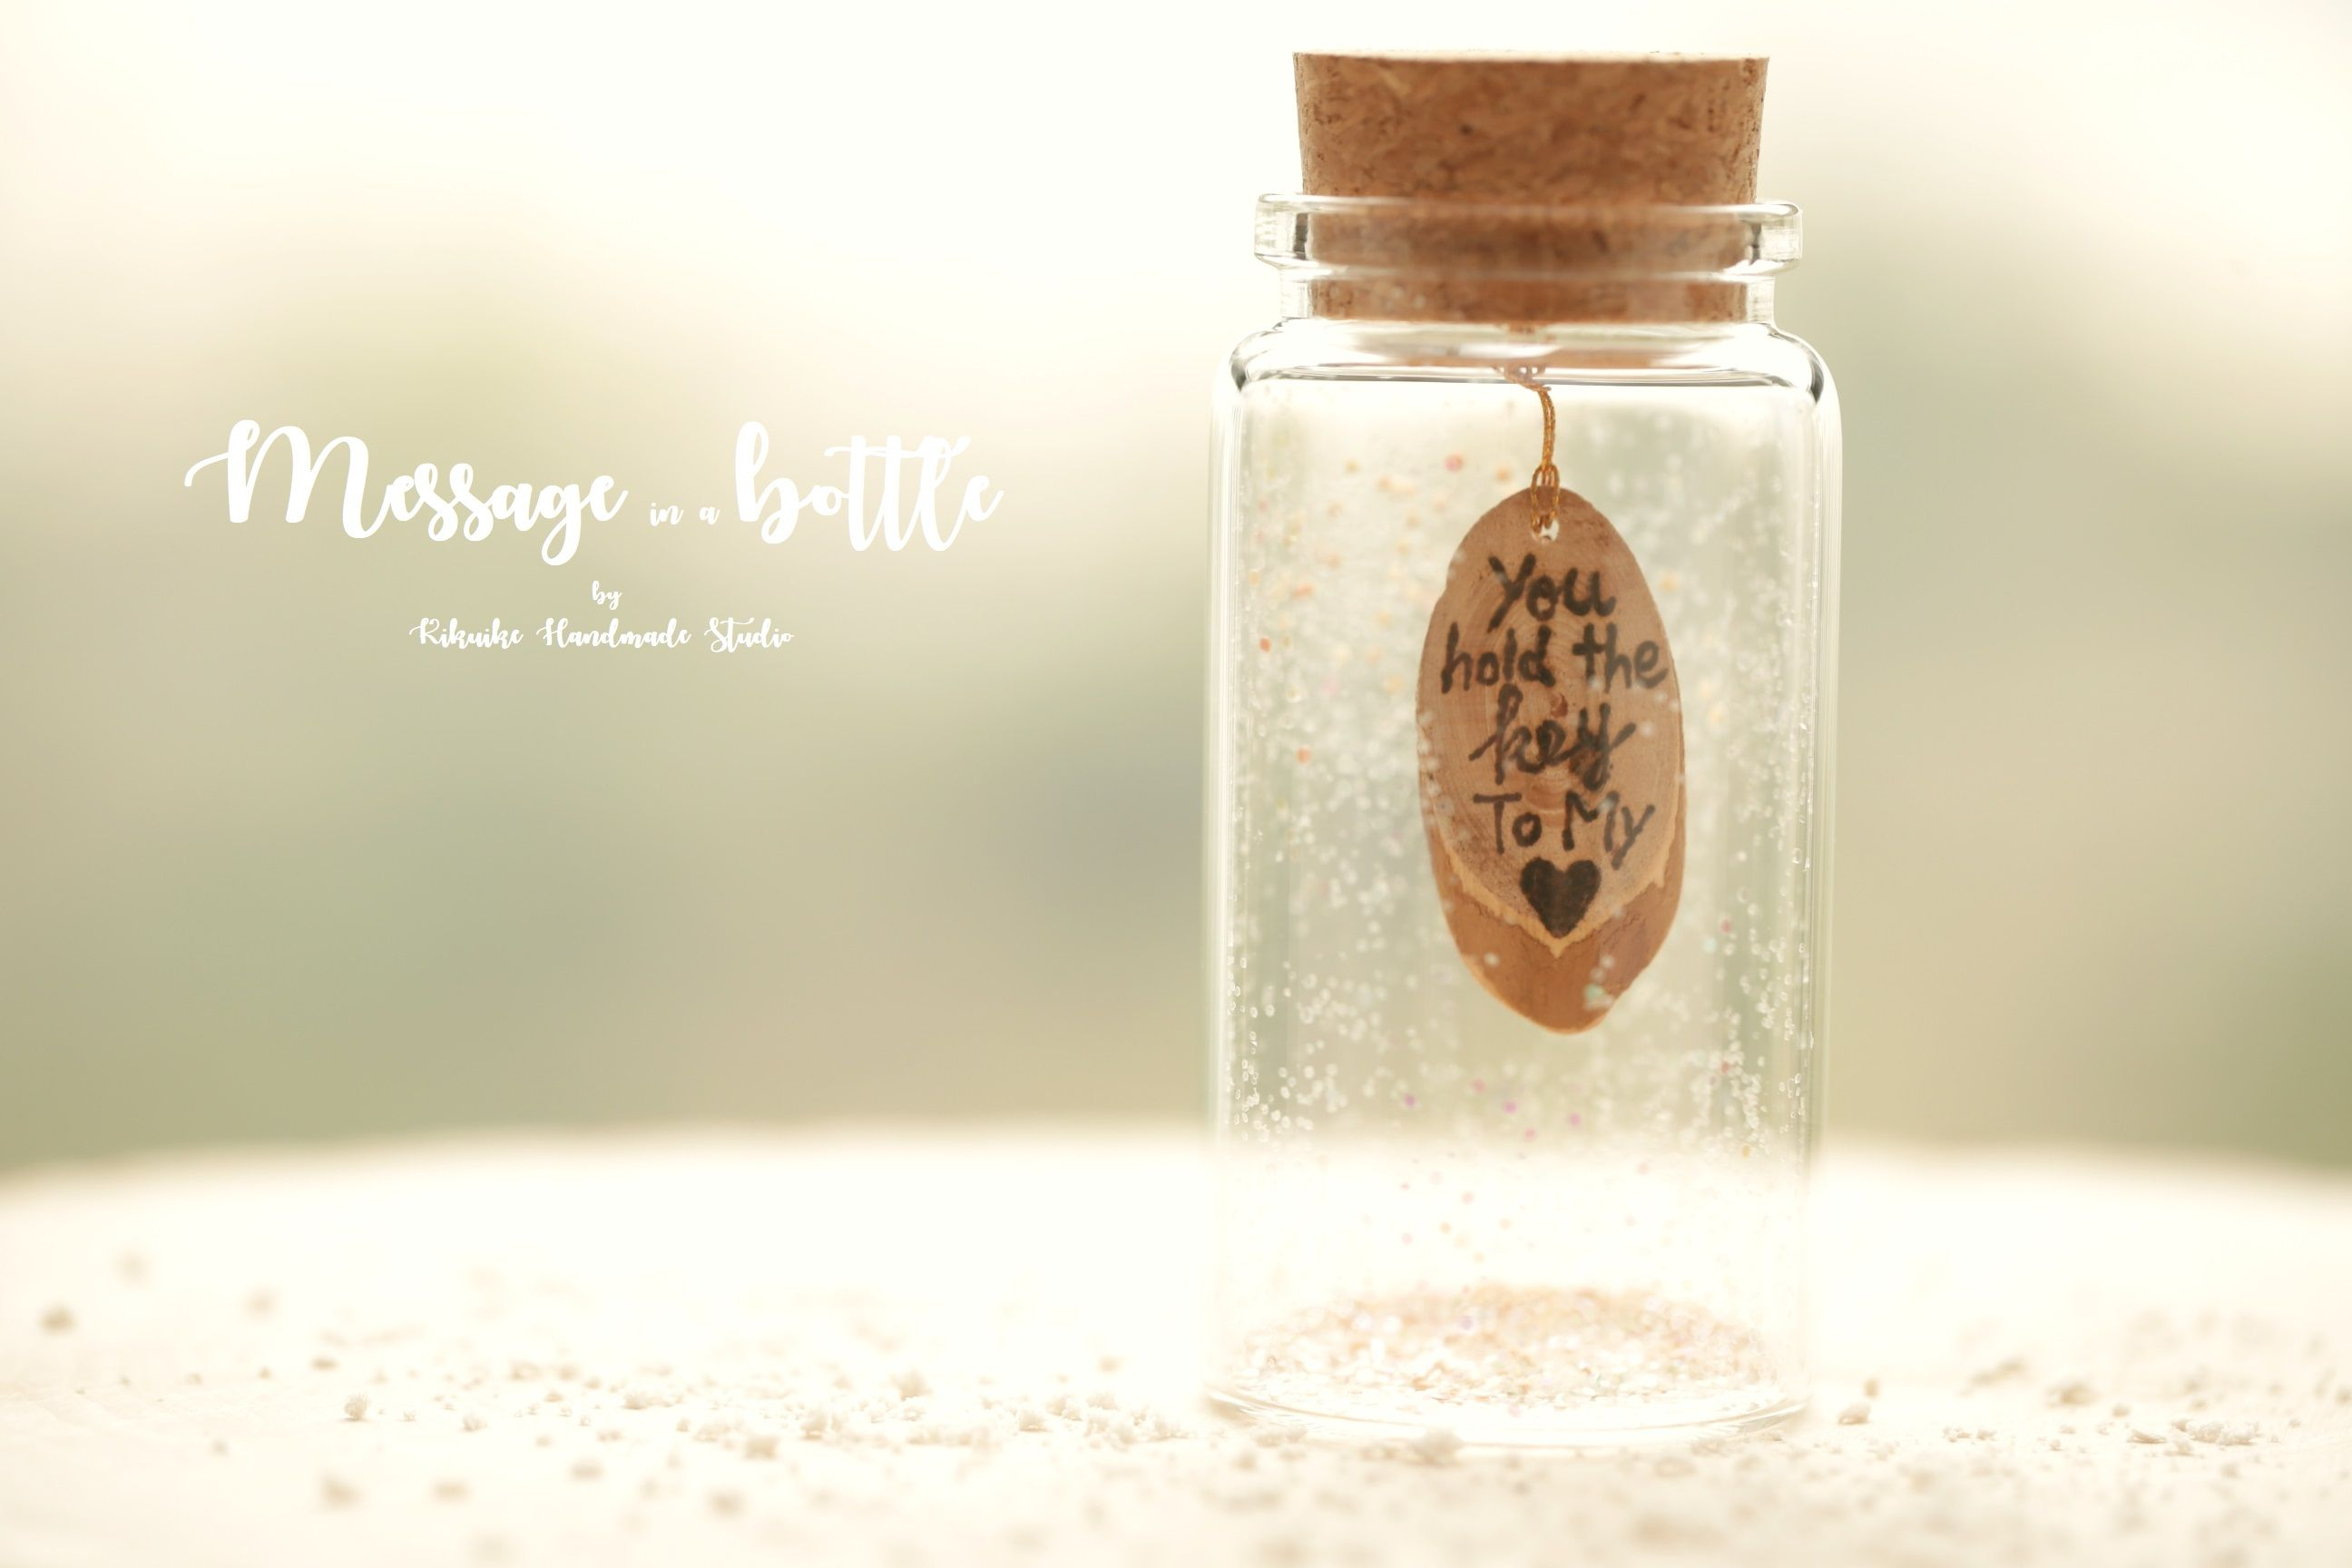 Hand Craved Wood Message You Own My Heart Now Tiny Message In A